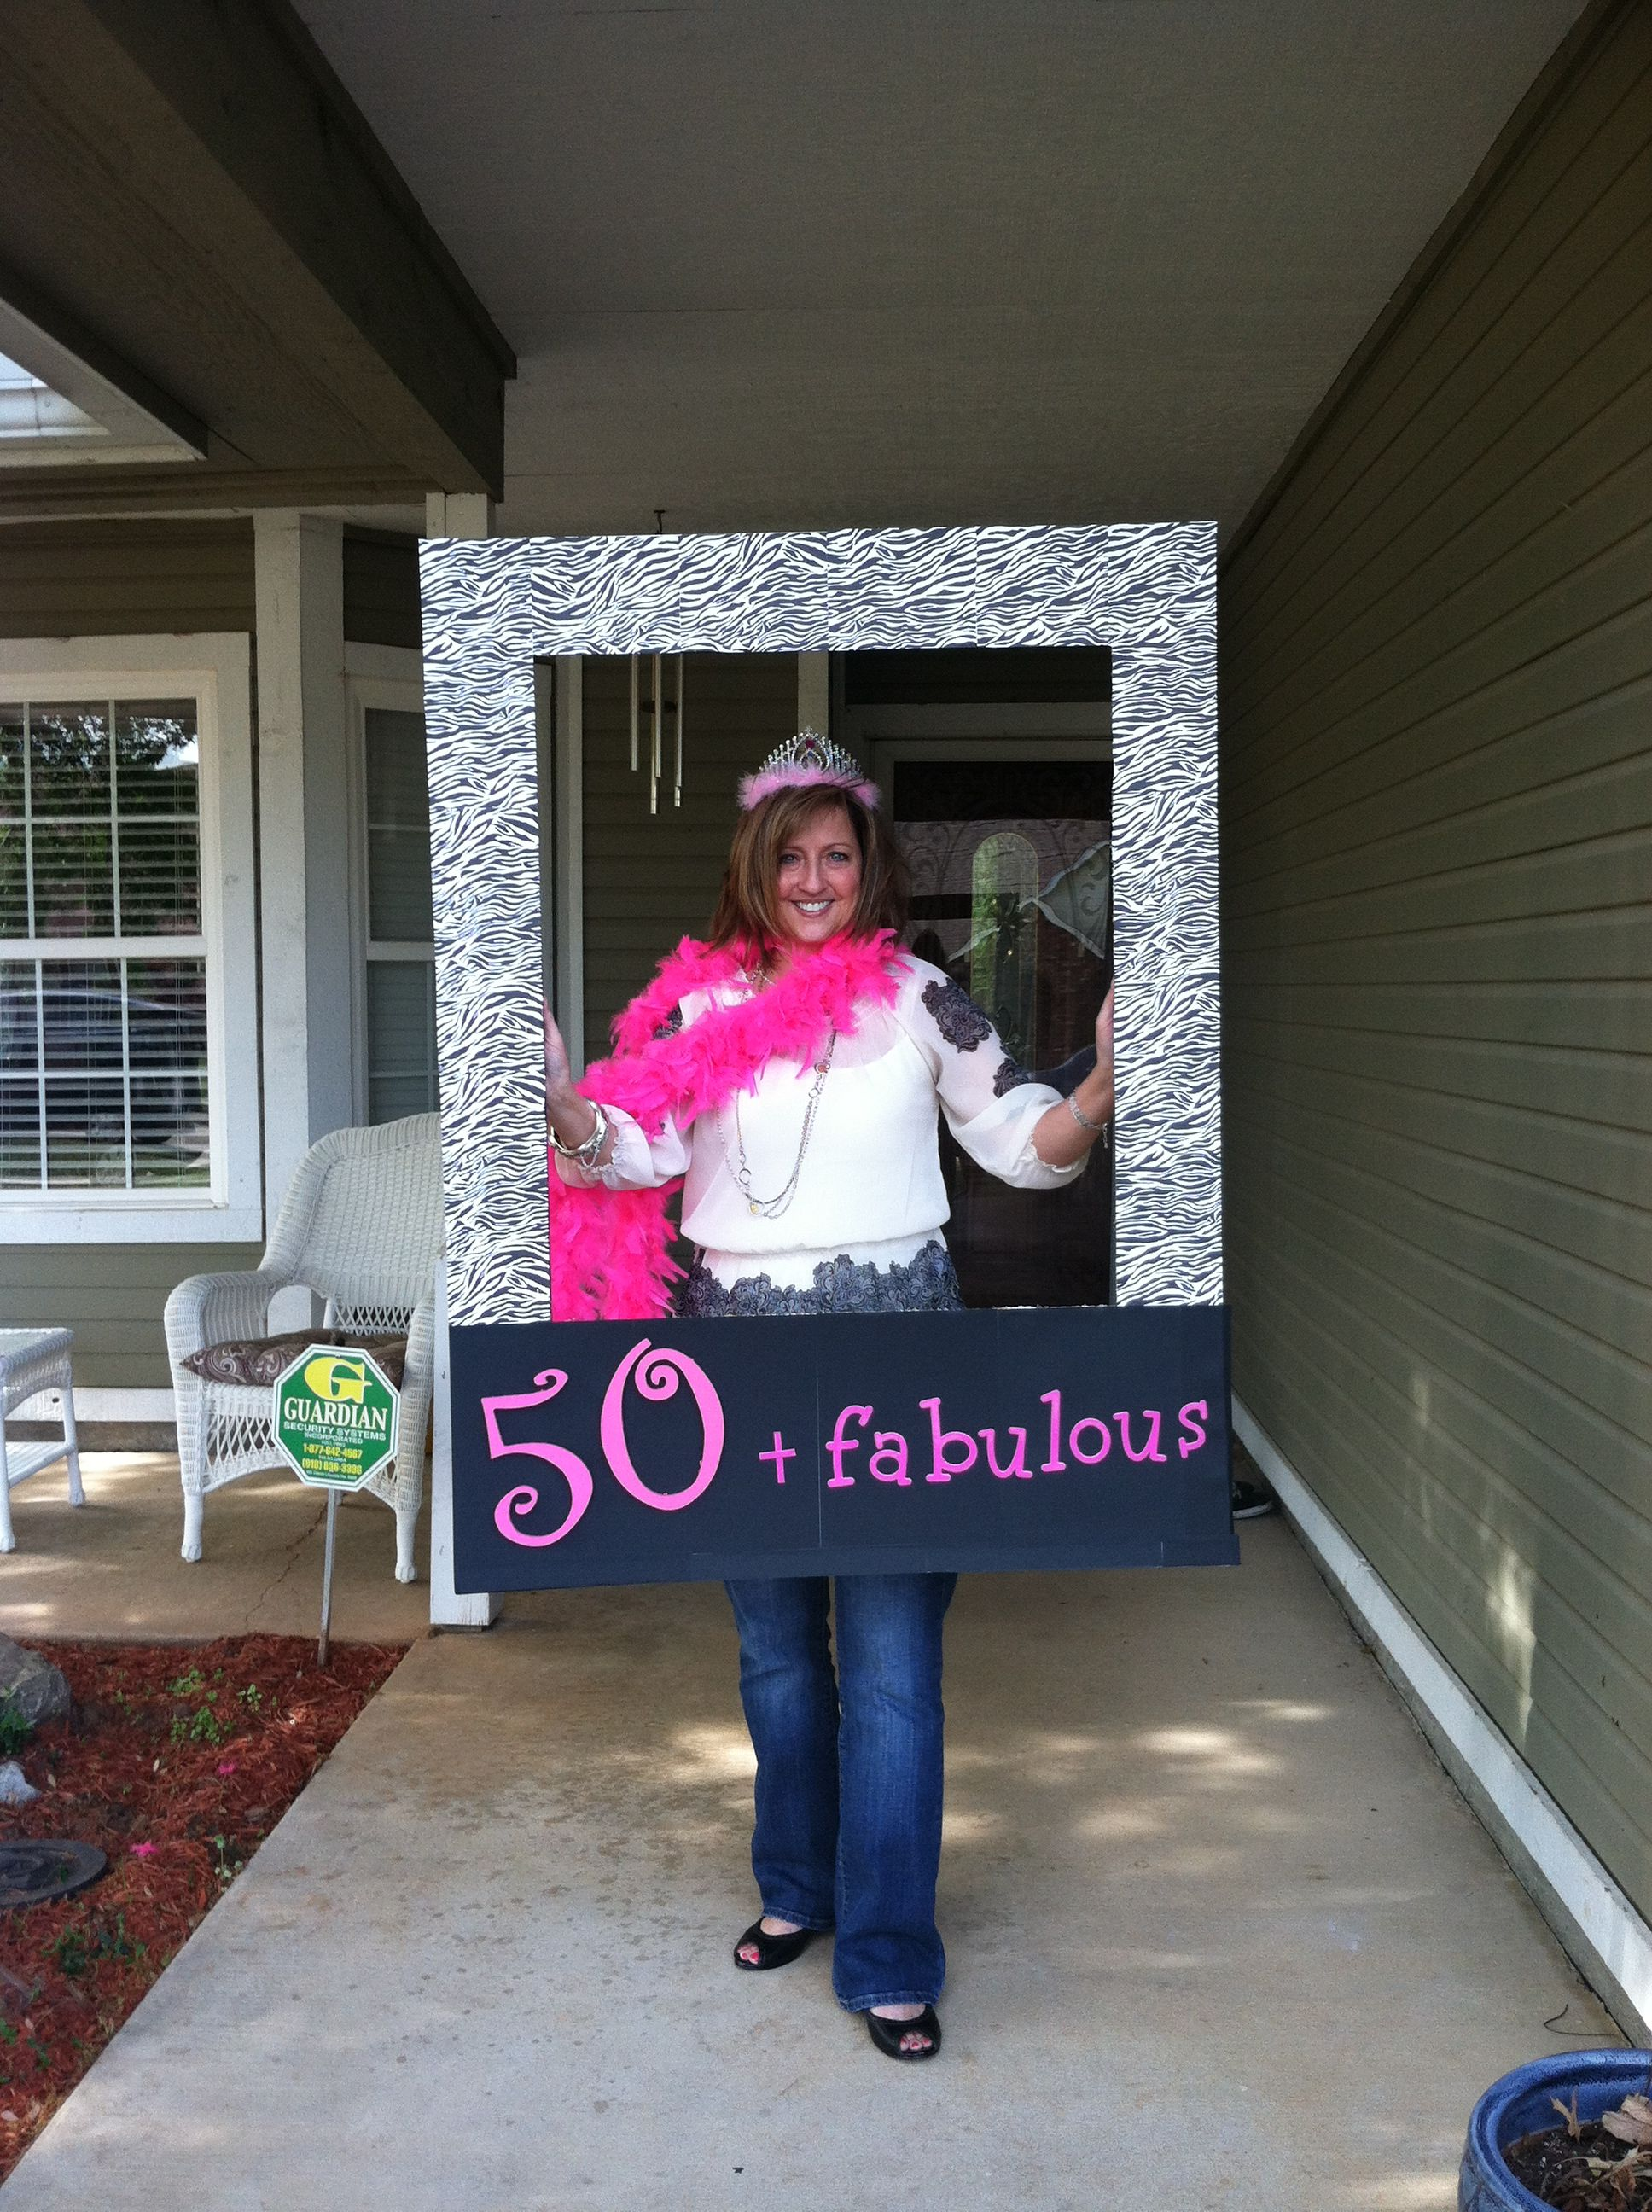 Fun 50th birthday photo prop for 50 fabulous party 50 for 50th birthday party decoration ideas diy